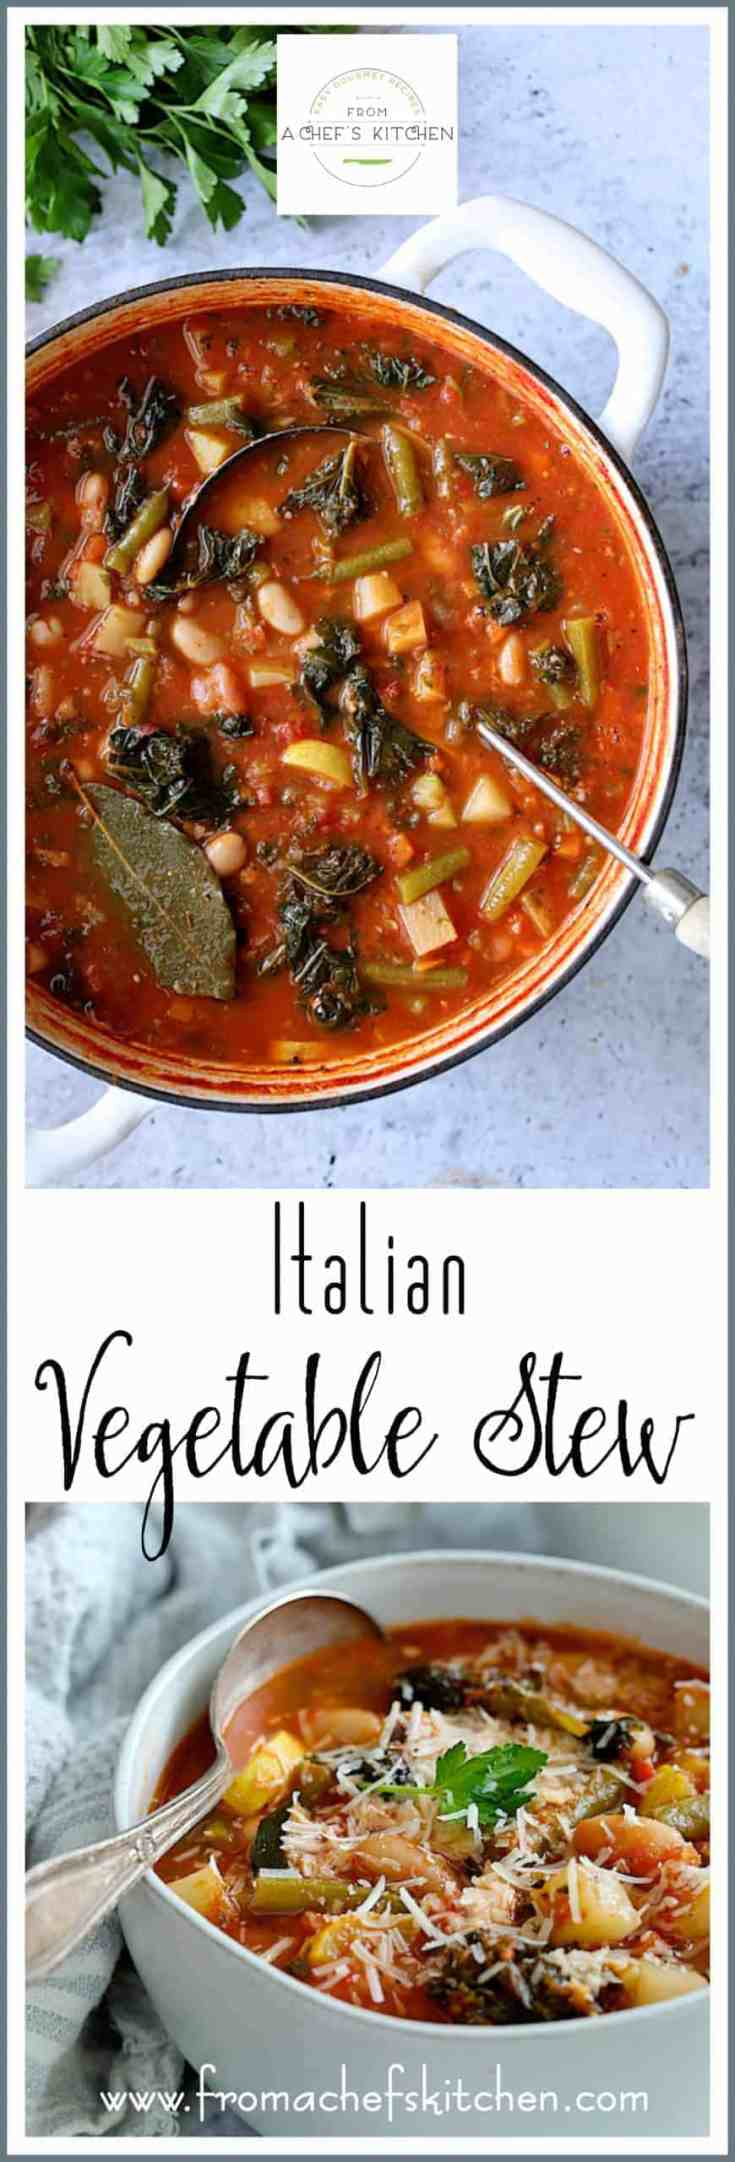 Italian Vegetable Stew is perfect hearty yet healthful, guilt-free comfort food that's loaded with goodness! #Italian #Italianfood #vegetable #vegetablestew #vegetablesoup #healthysoups